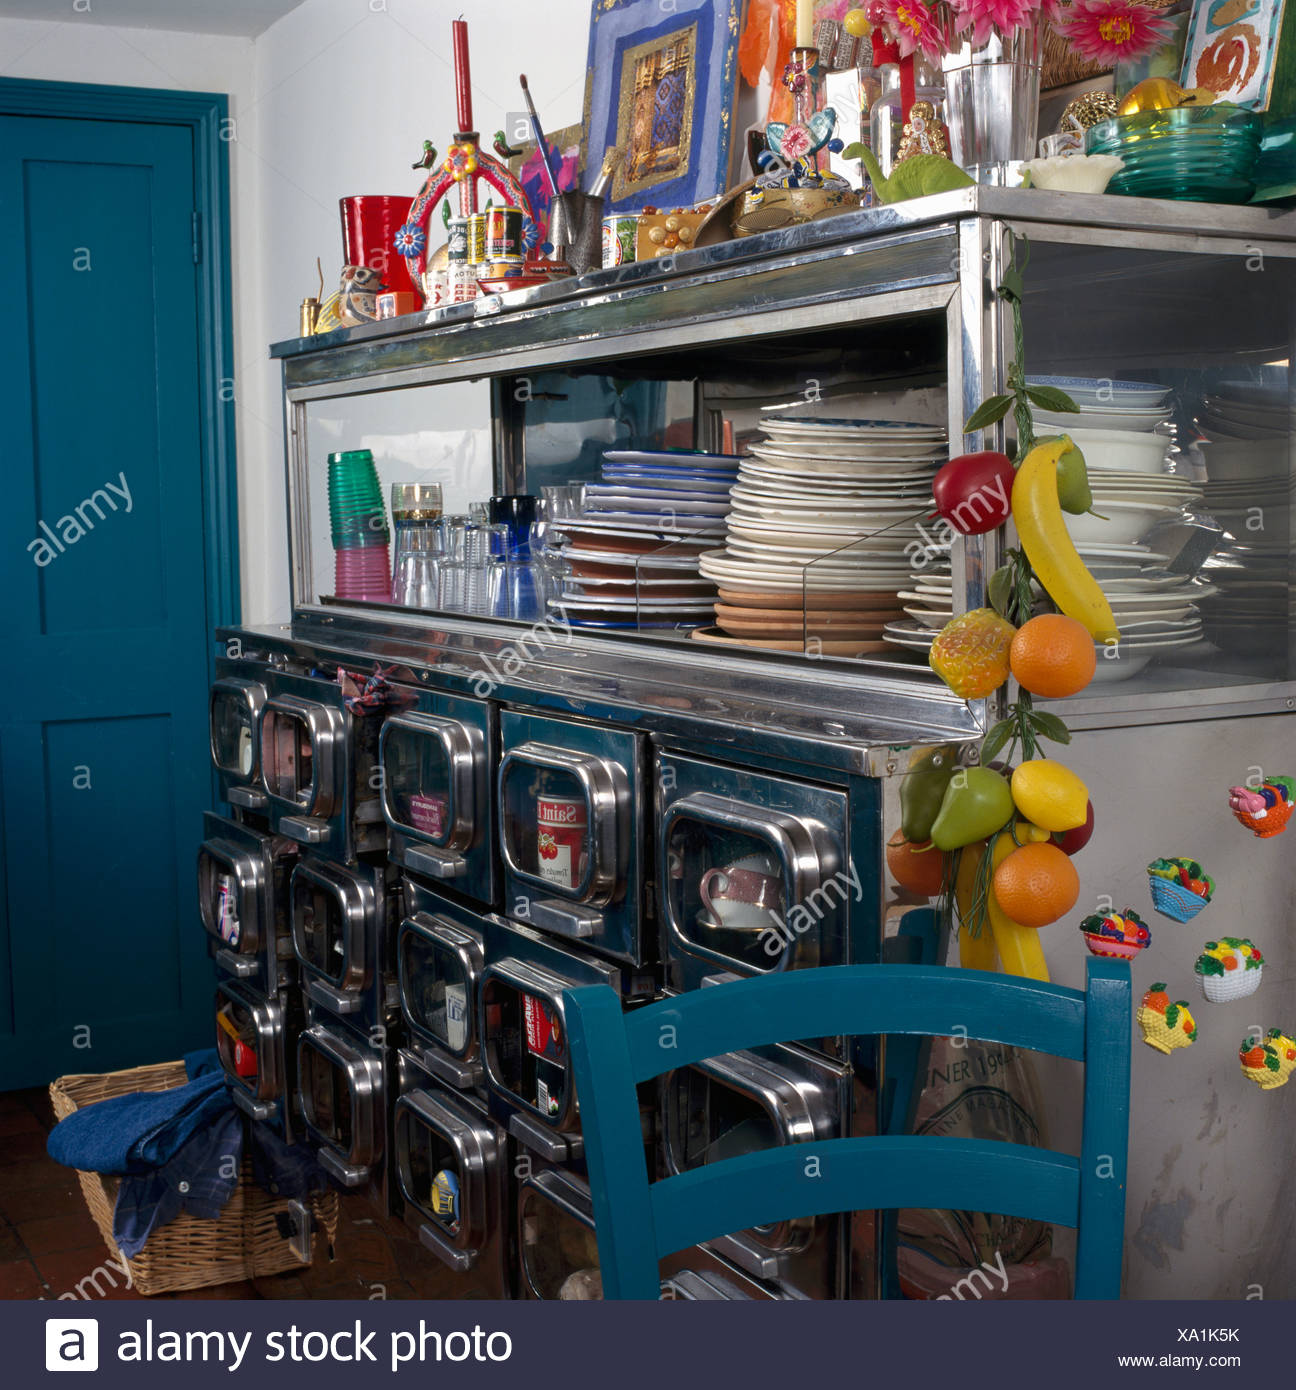 Retro Kitchen Stockfotos & Retro Kitchen Bilder - Alamy